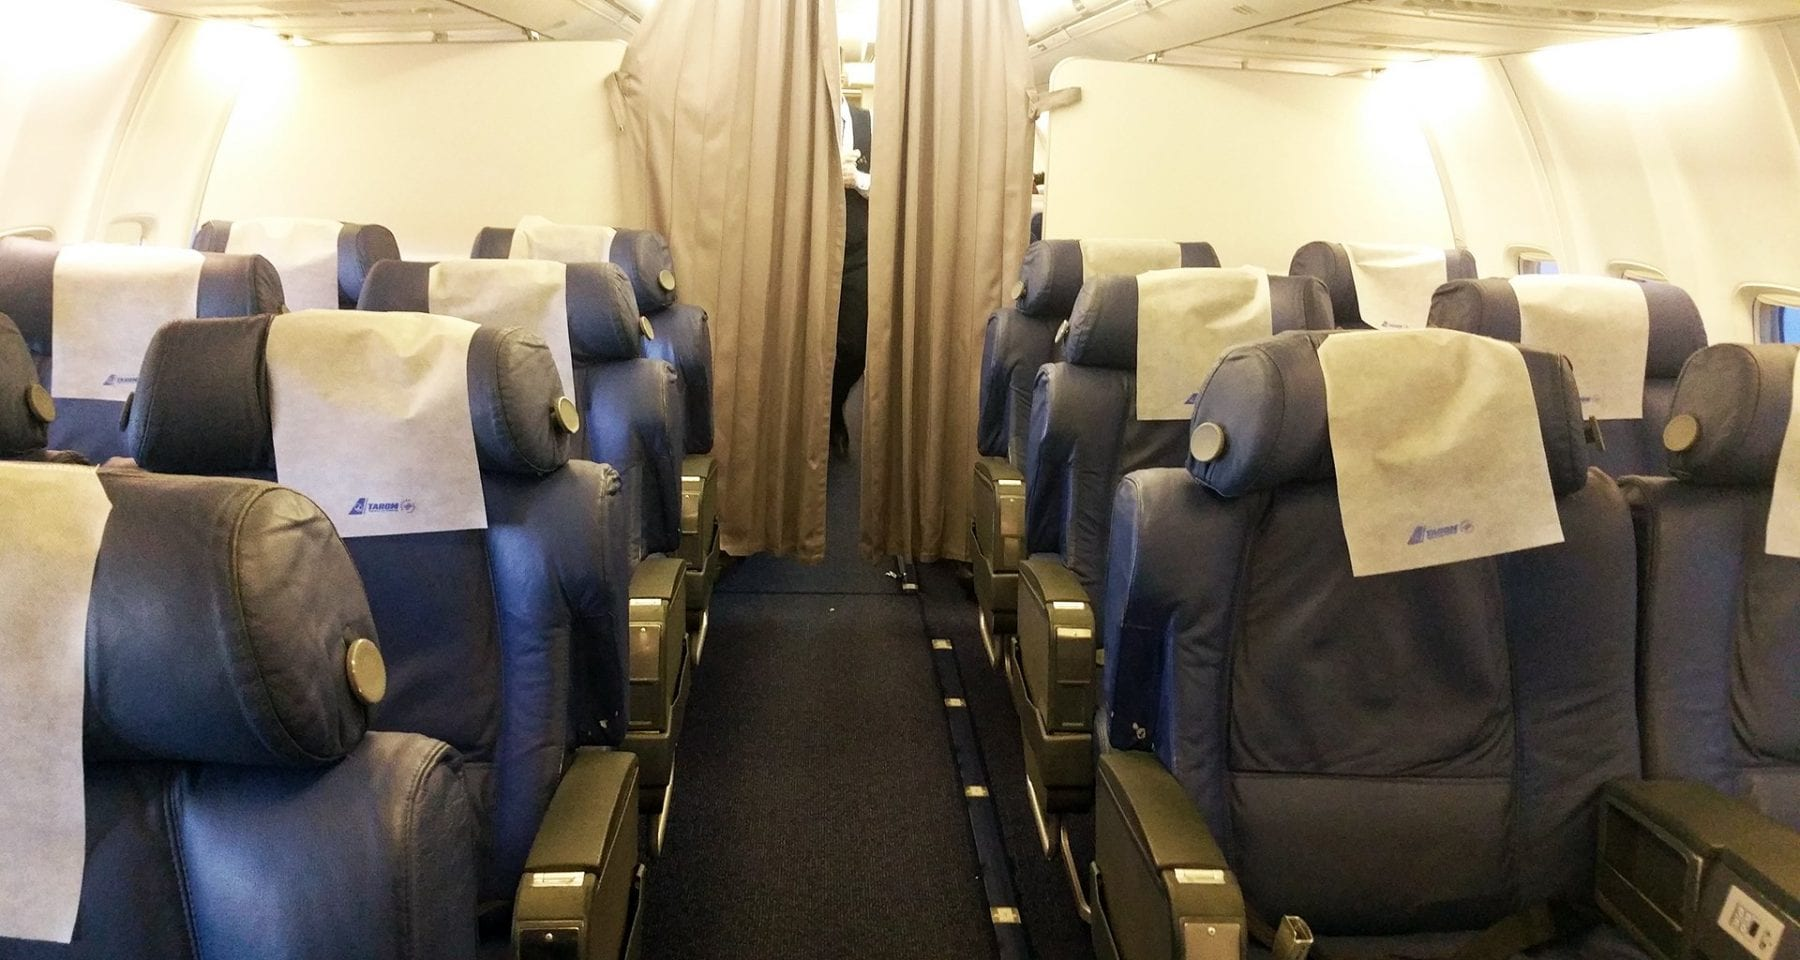 Tarom Airlines Business Class cabin